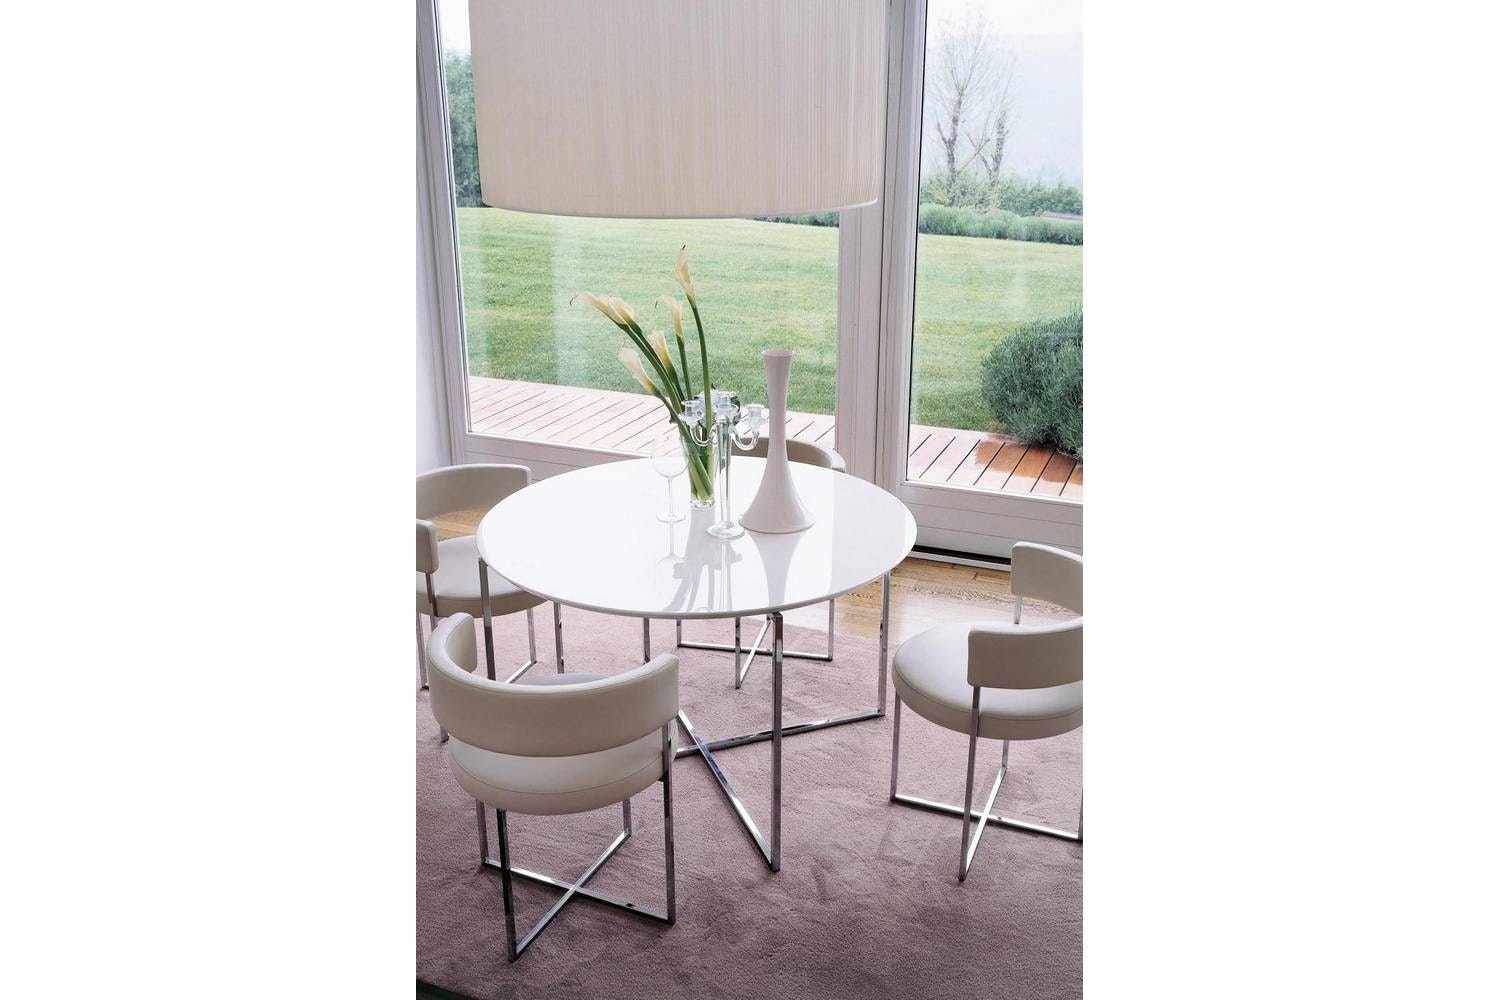 Sirio Table by G. Vigano for Porada